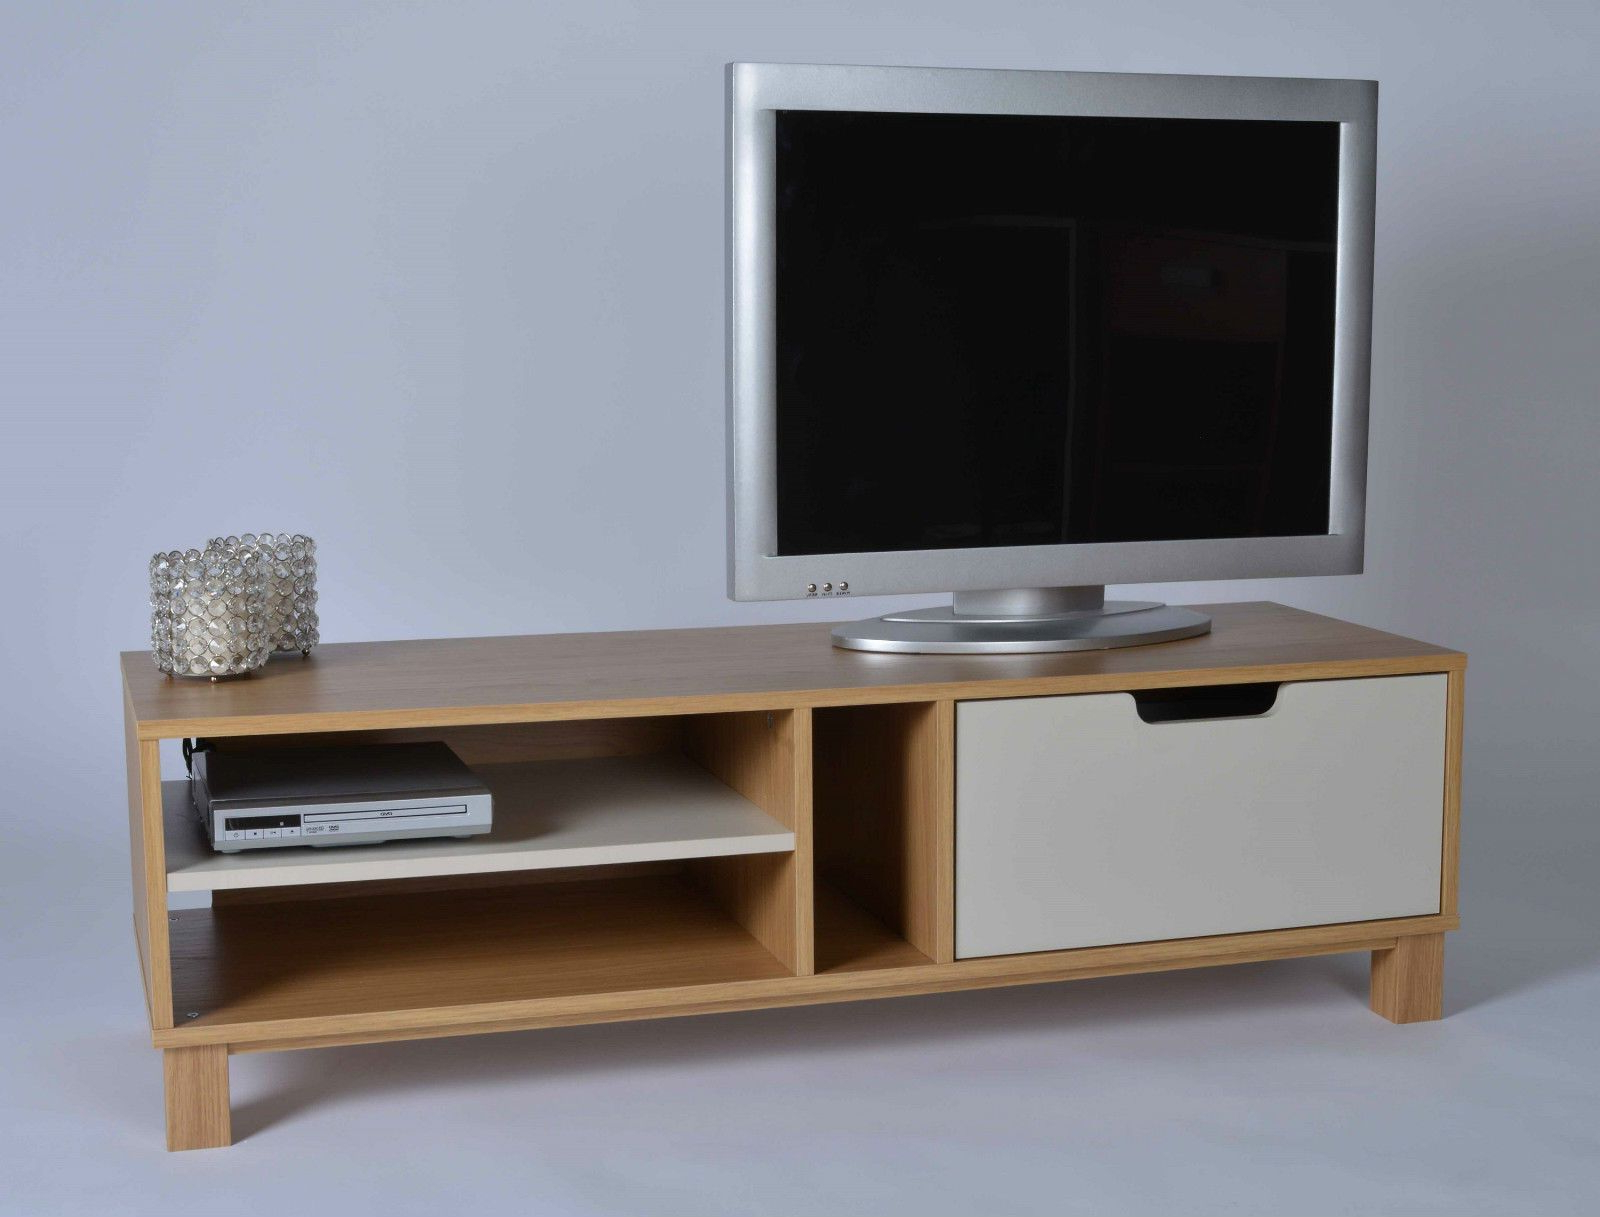 2018 Owen Retro Tv Unit Stands In Retro Tv Stand Wooden White Drawer Shelves Storage Unit (View 1 of 25)